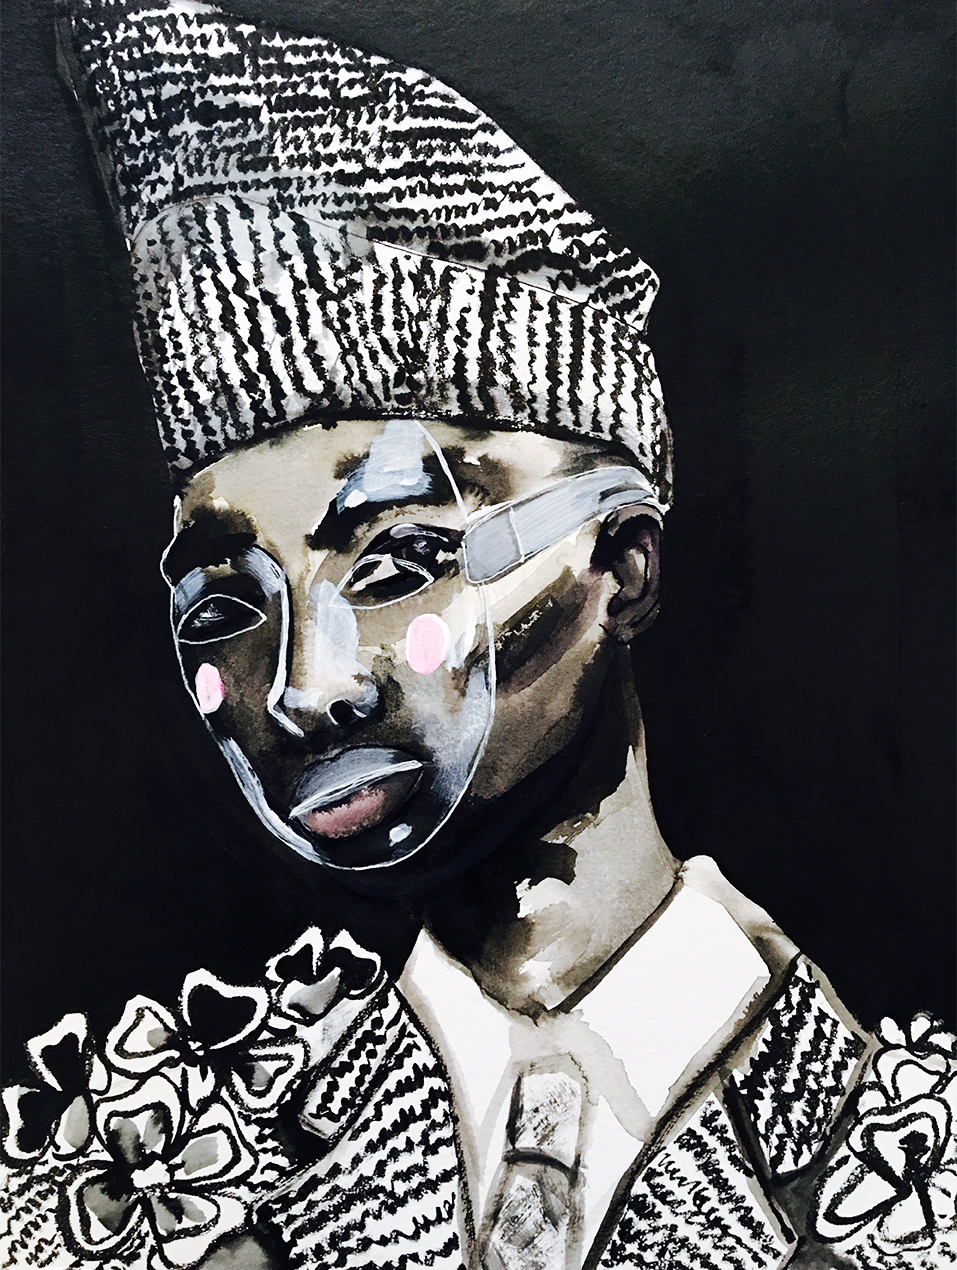 Portrait inspired by Thom Browne